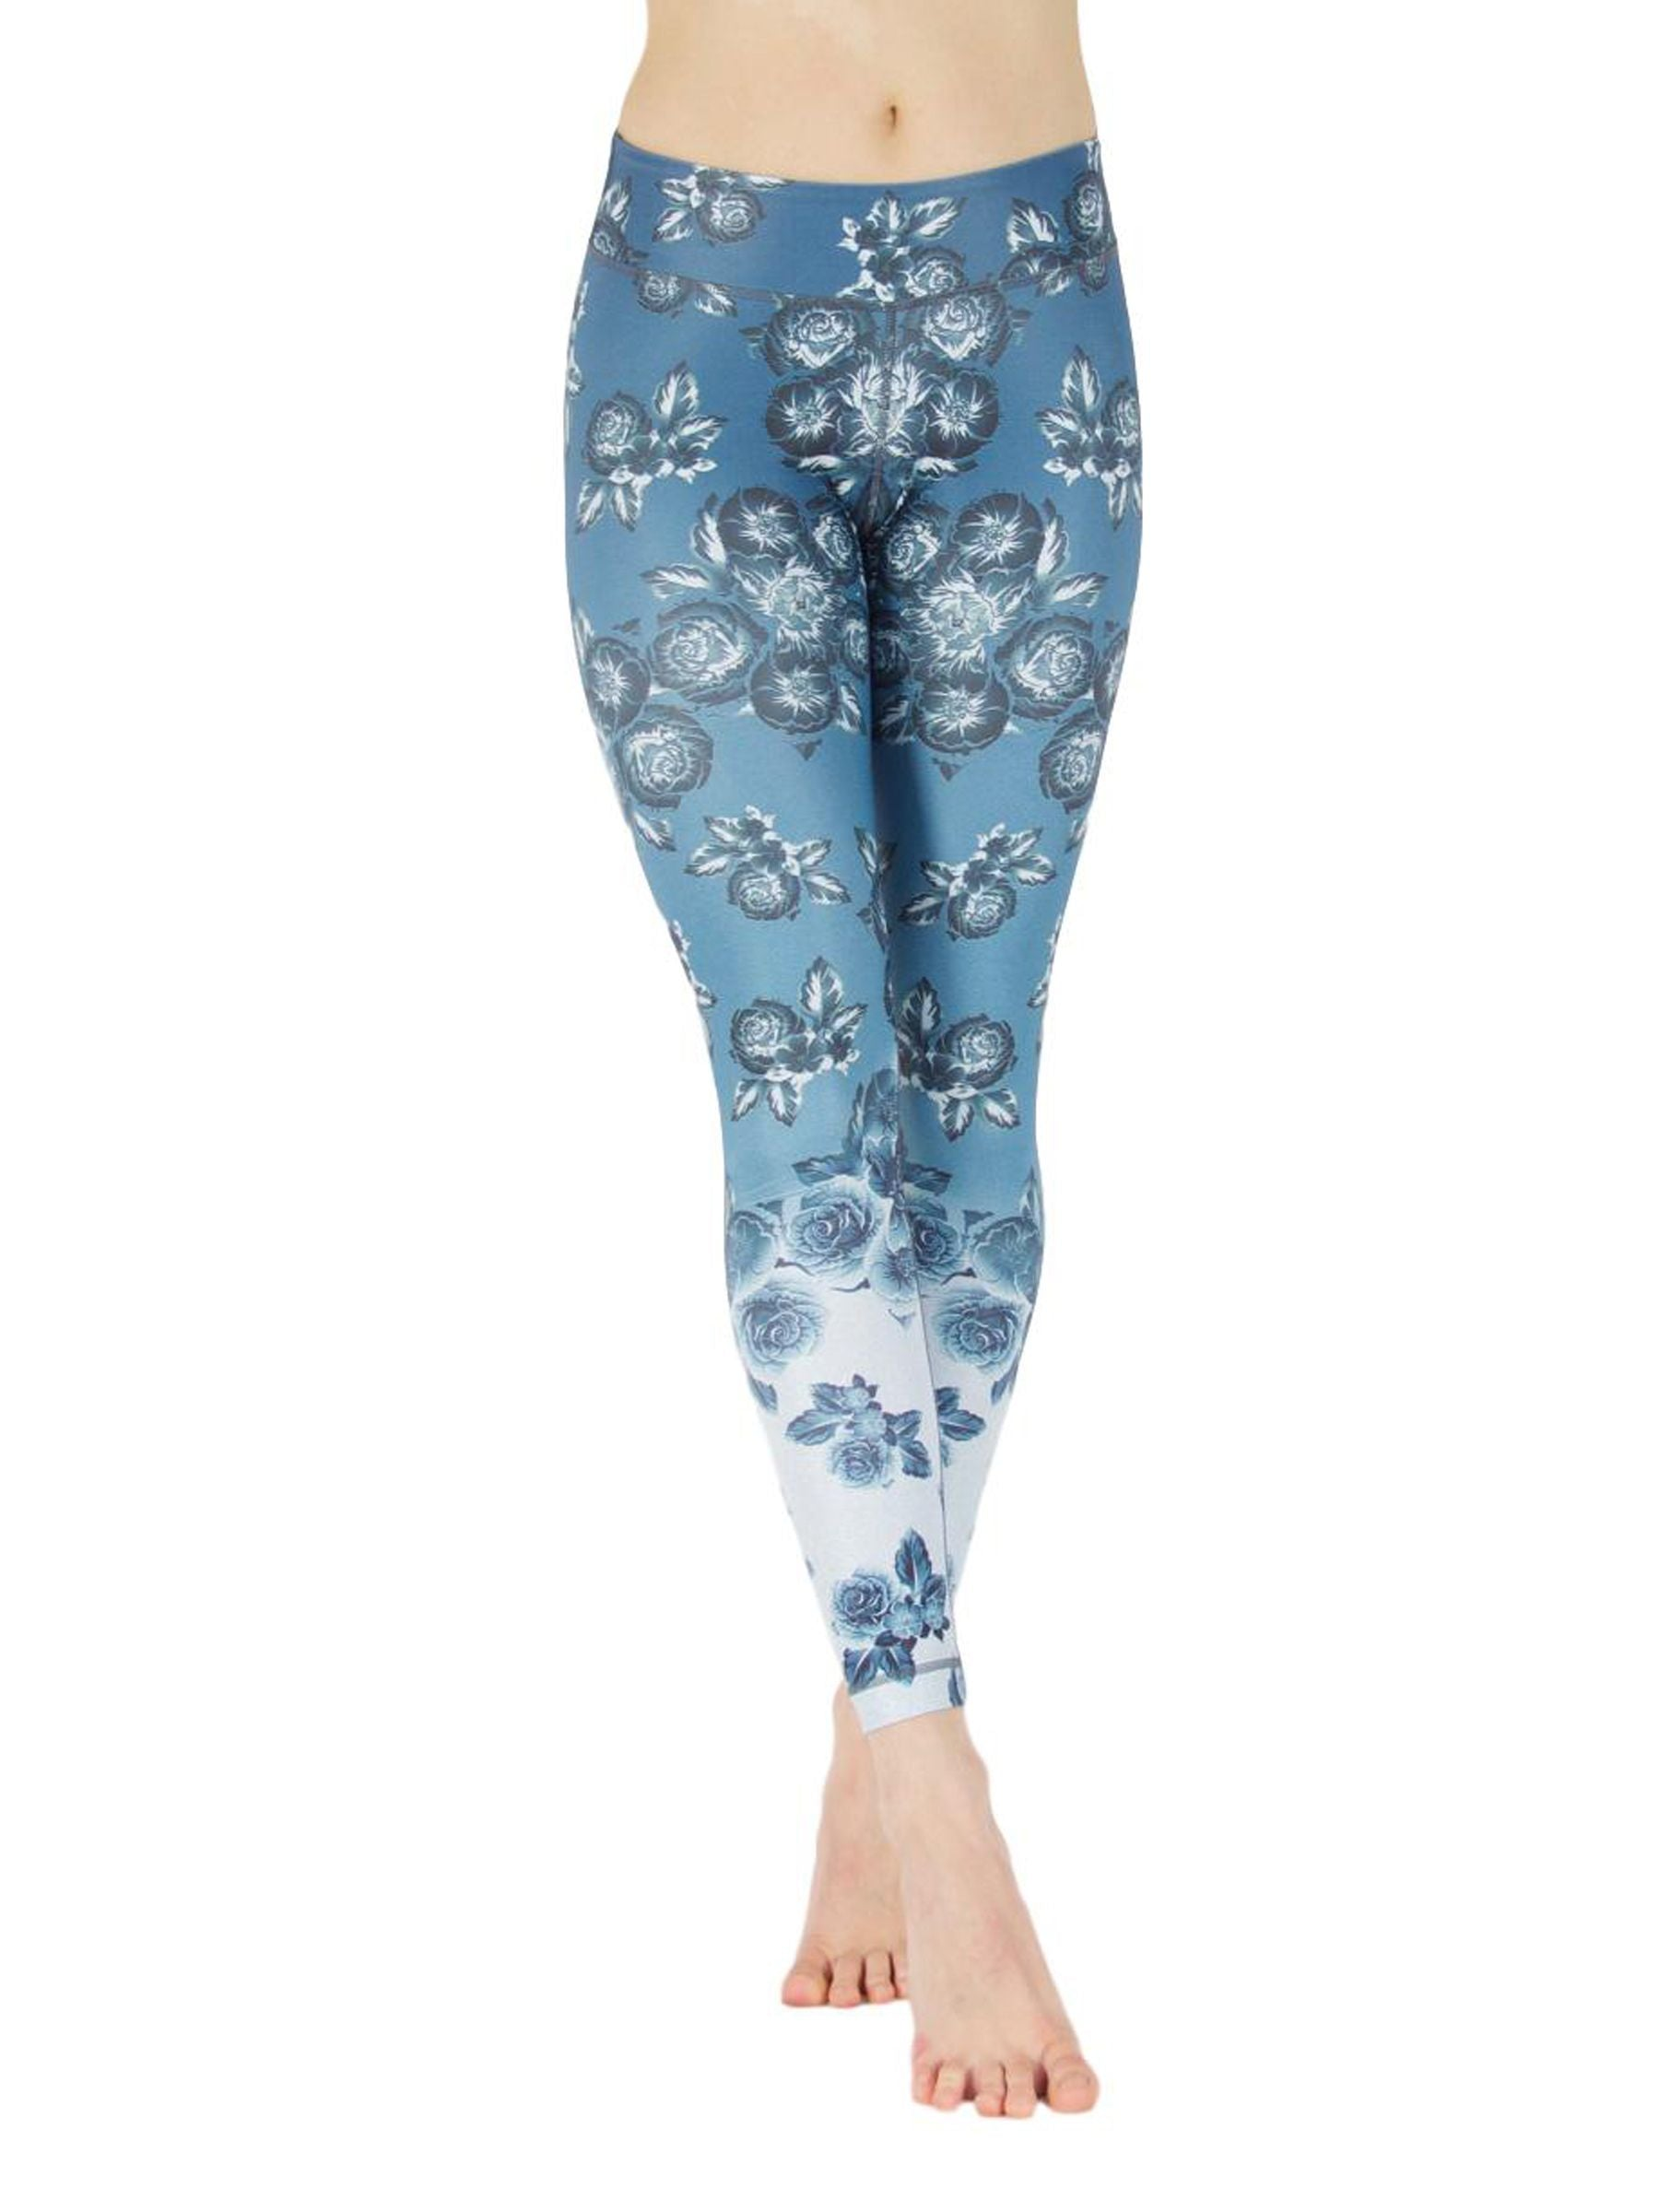 Lilly of the Valley by Niyama - High Quality, Yoga Legging for Movement Artists.